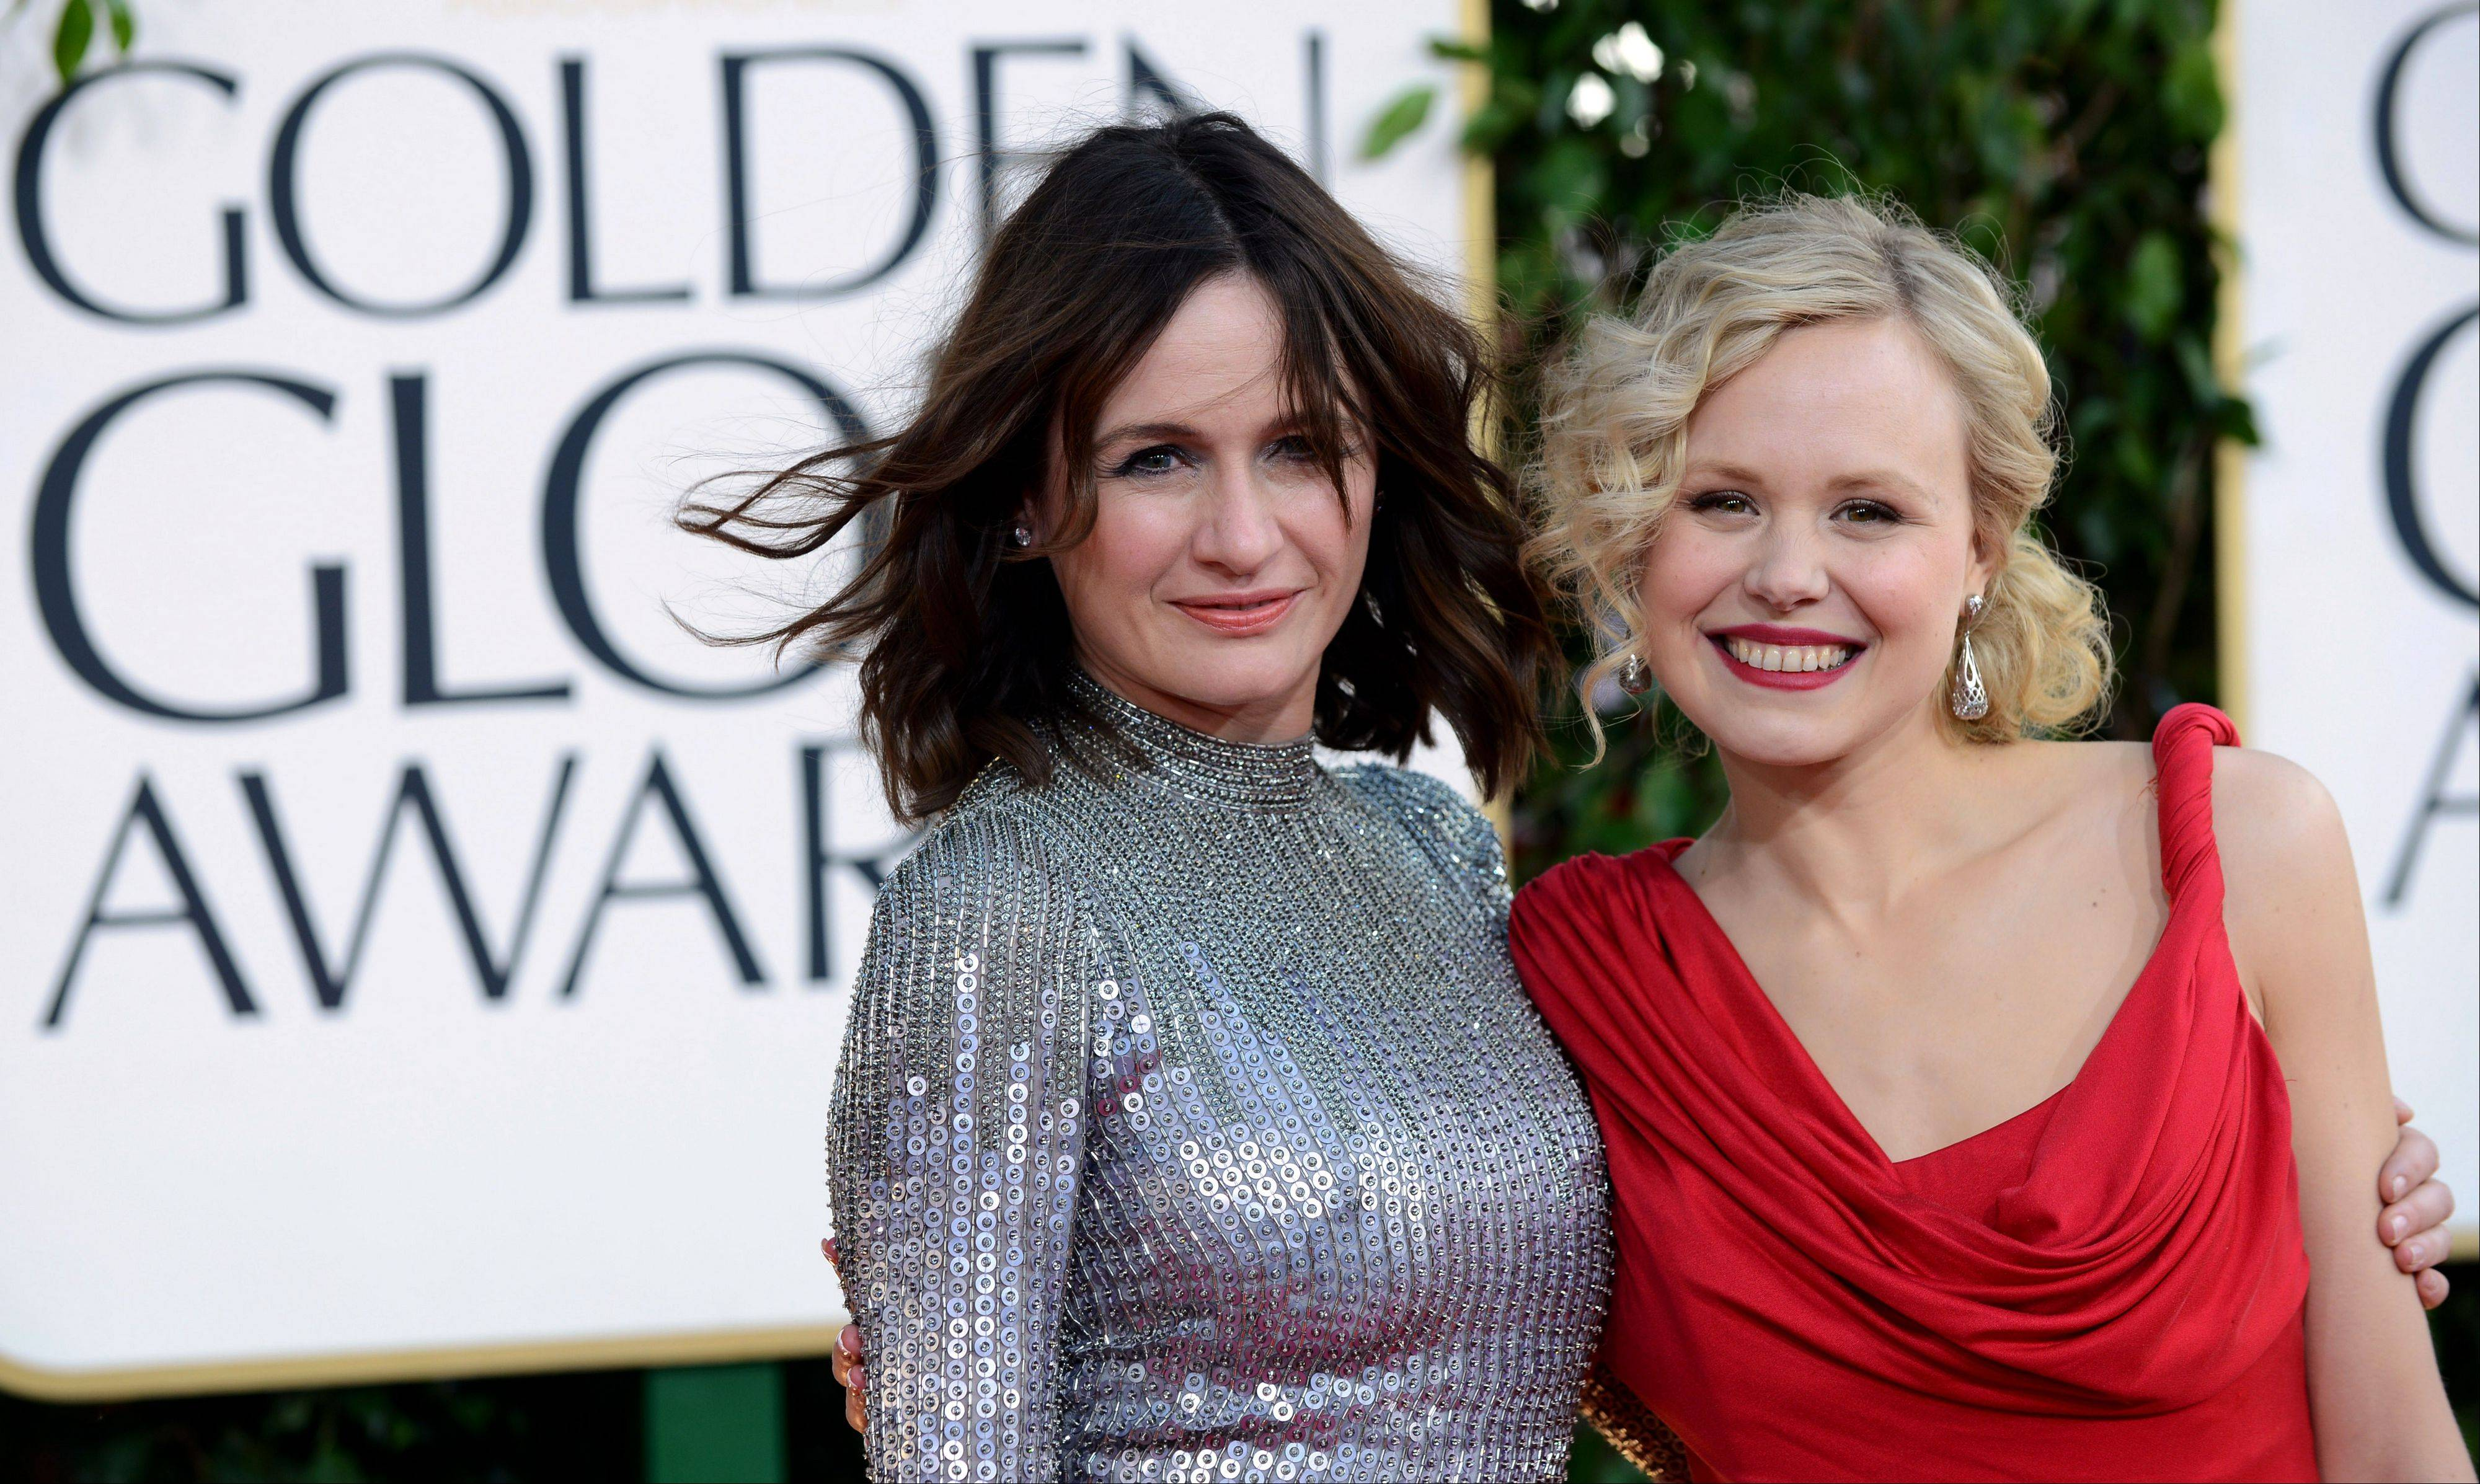 """Newsroom"" actresses Emily Mortimer, left, and Alison Pill arrive at the 70th Annual Golden Globe Awards at the Beverly Hilton Hotel on Sunday Jan. 13, 2013, in Beverly Hills, Calif."